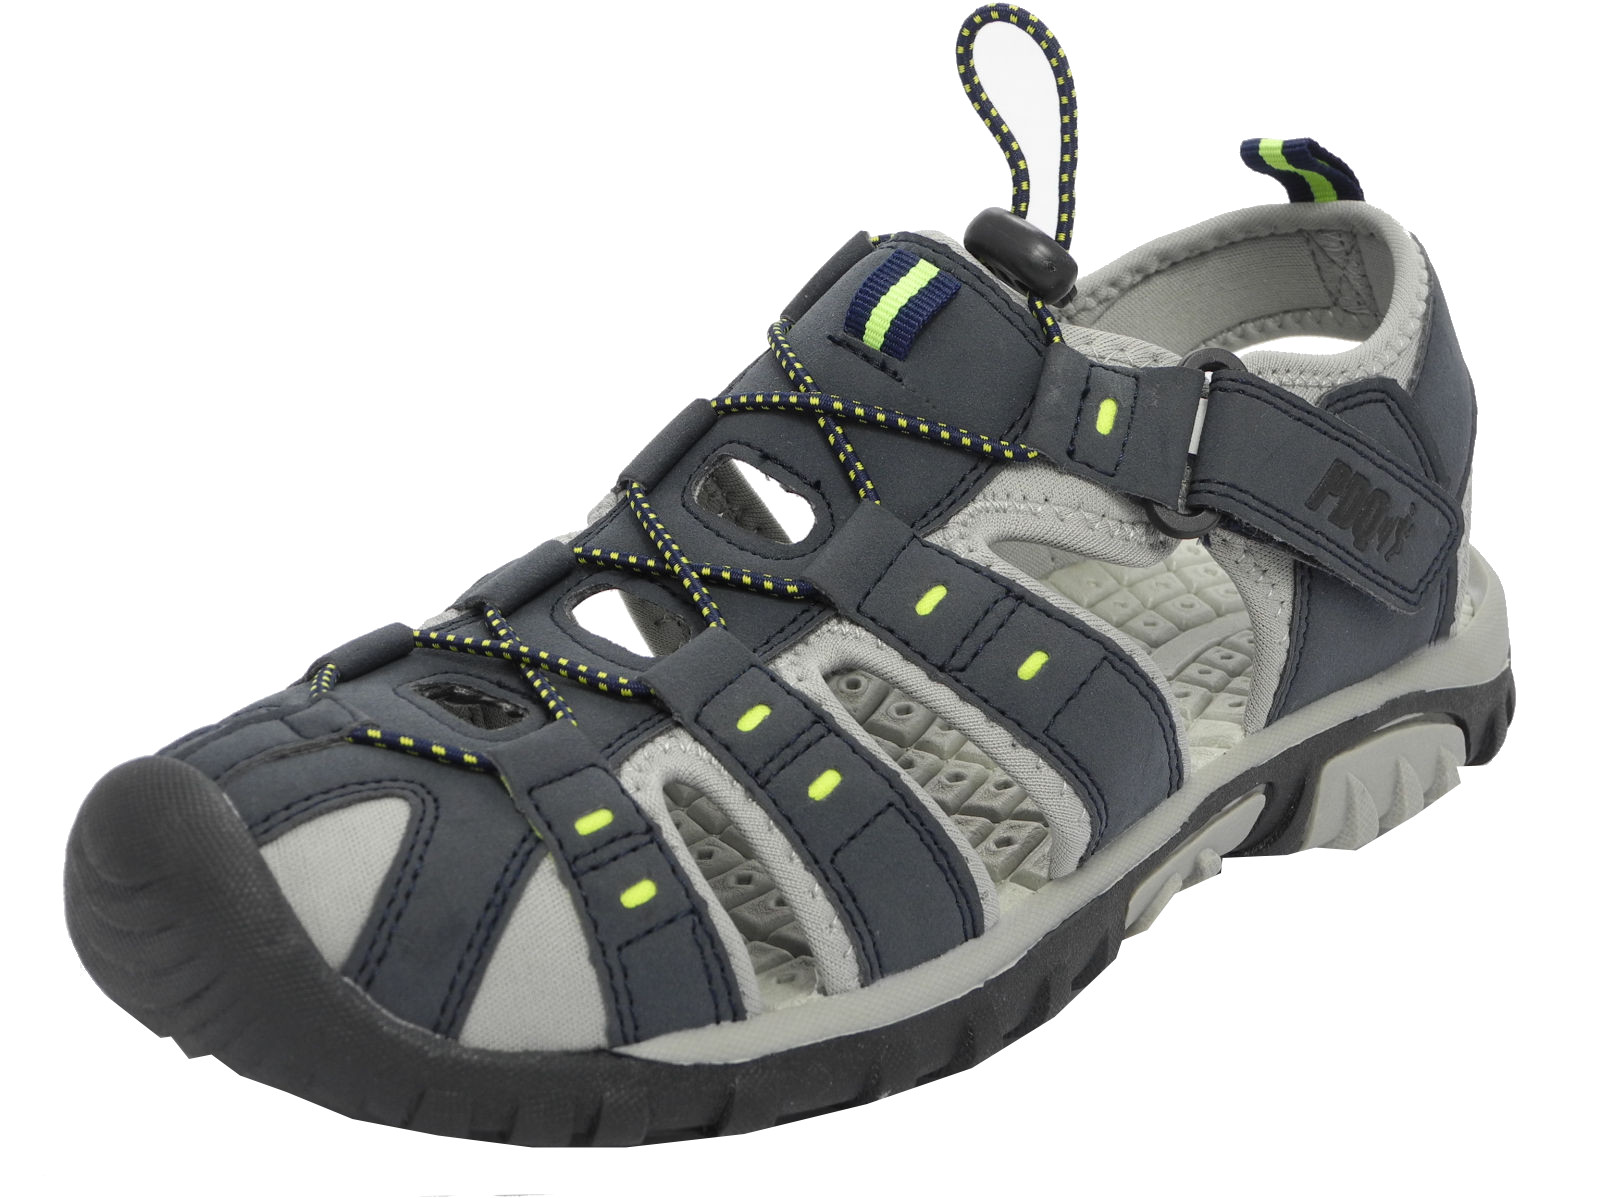 Mens Boys Pdq Sports Hiking Closed Toe Trail Sandals Size